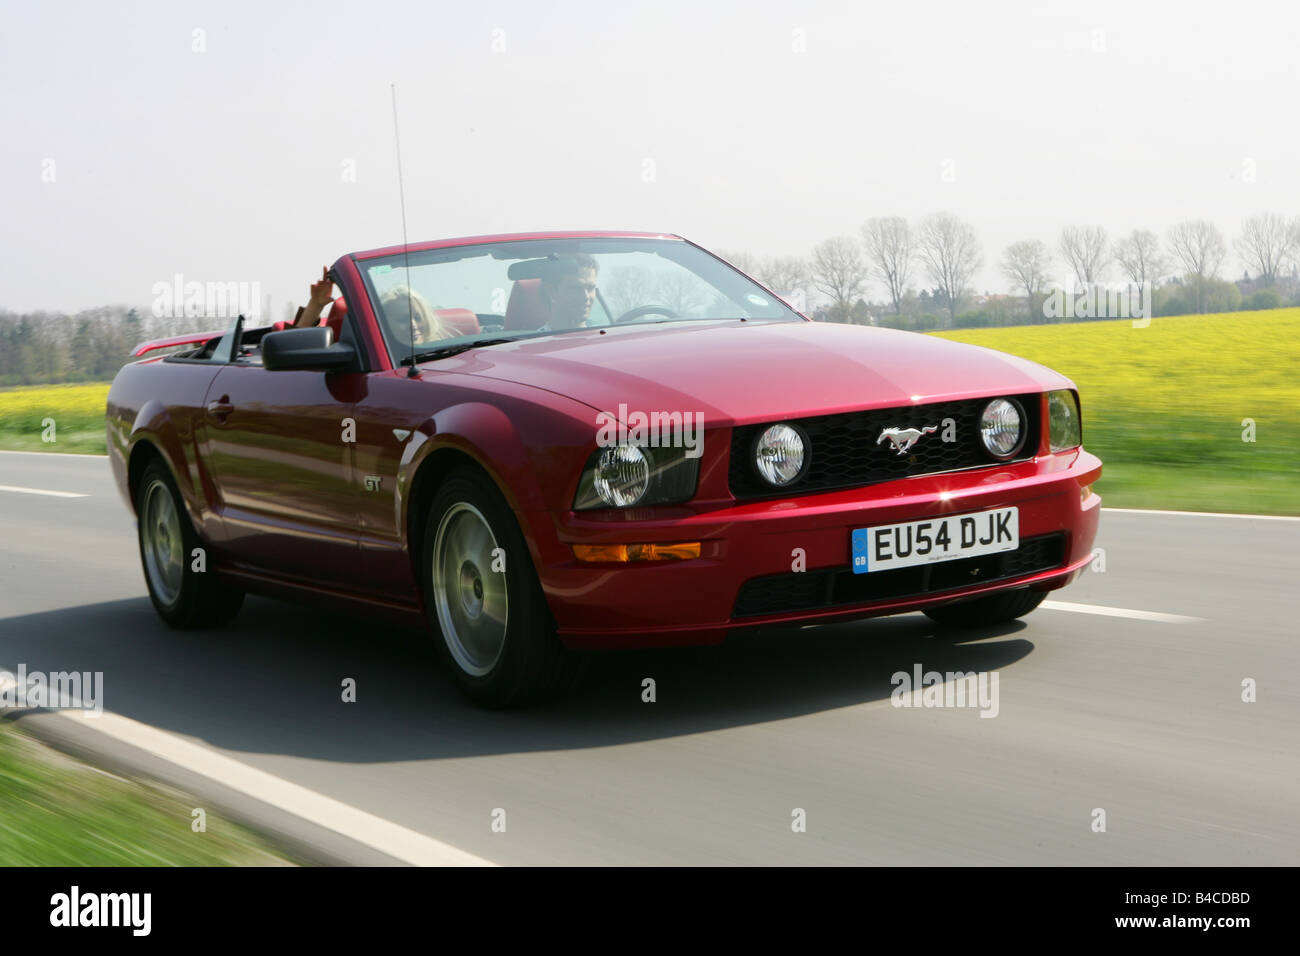 Ford Mustang Gt Convertible Stock Photos 1964 Car Model Year 2005 Ruby Colored Driving